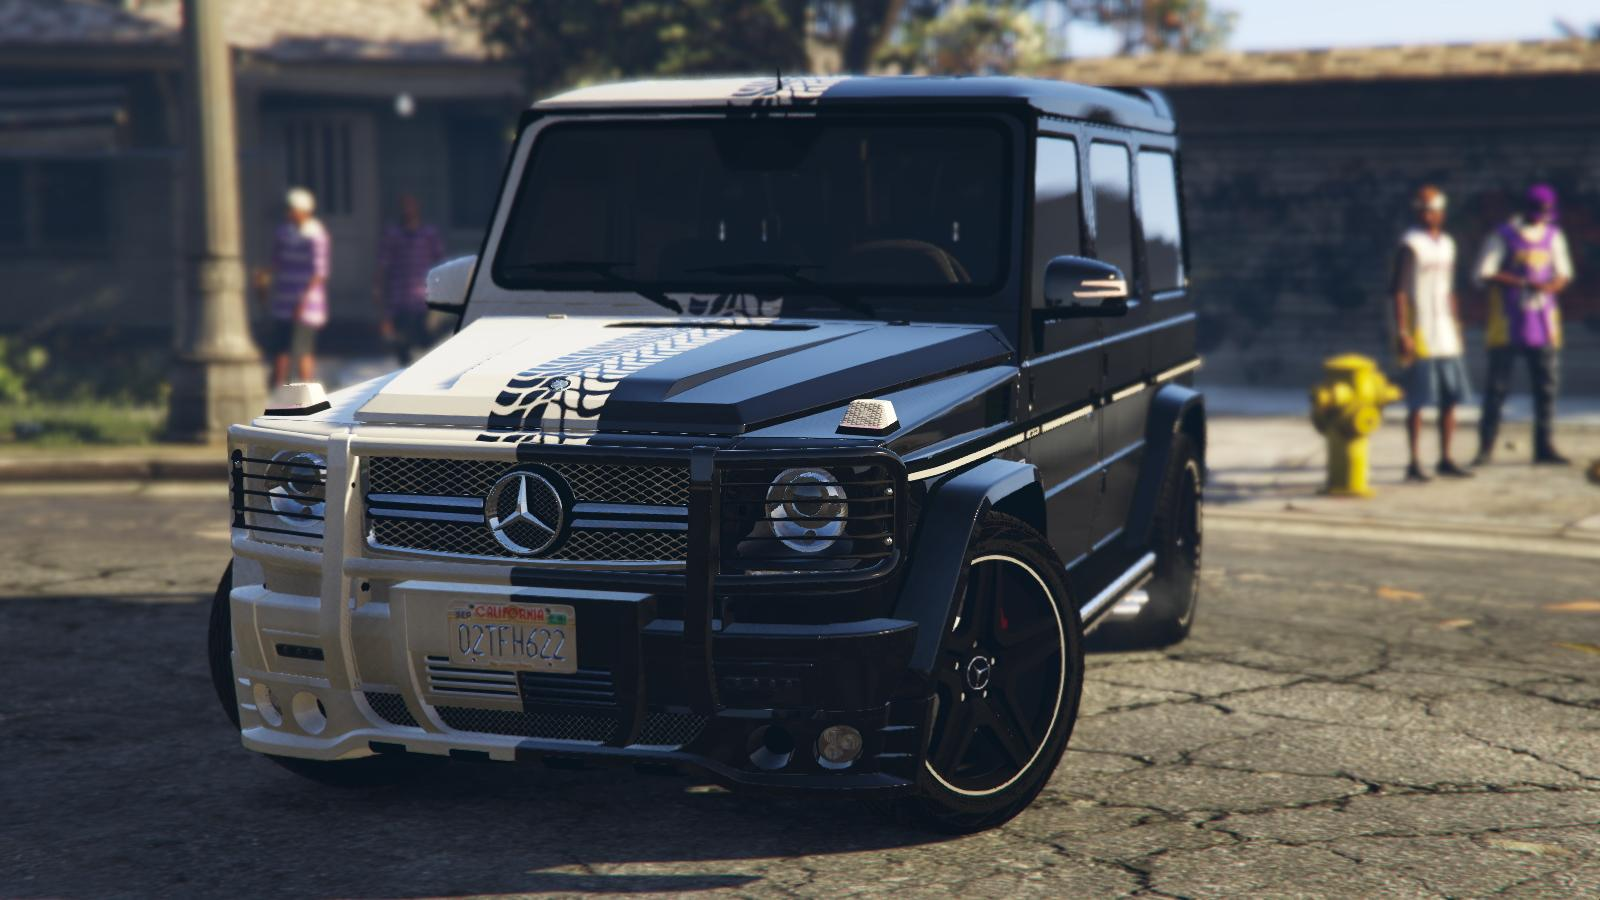 2013 mercedes benz g65 black white paintjob gta5 for Mercedes benz g65